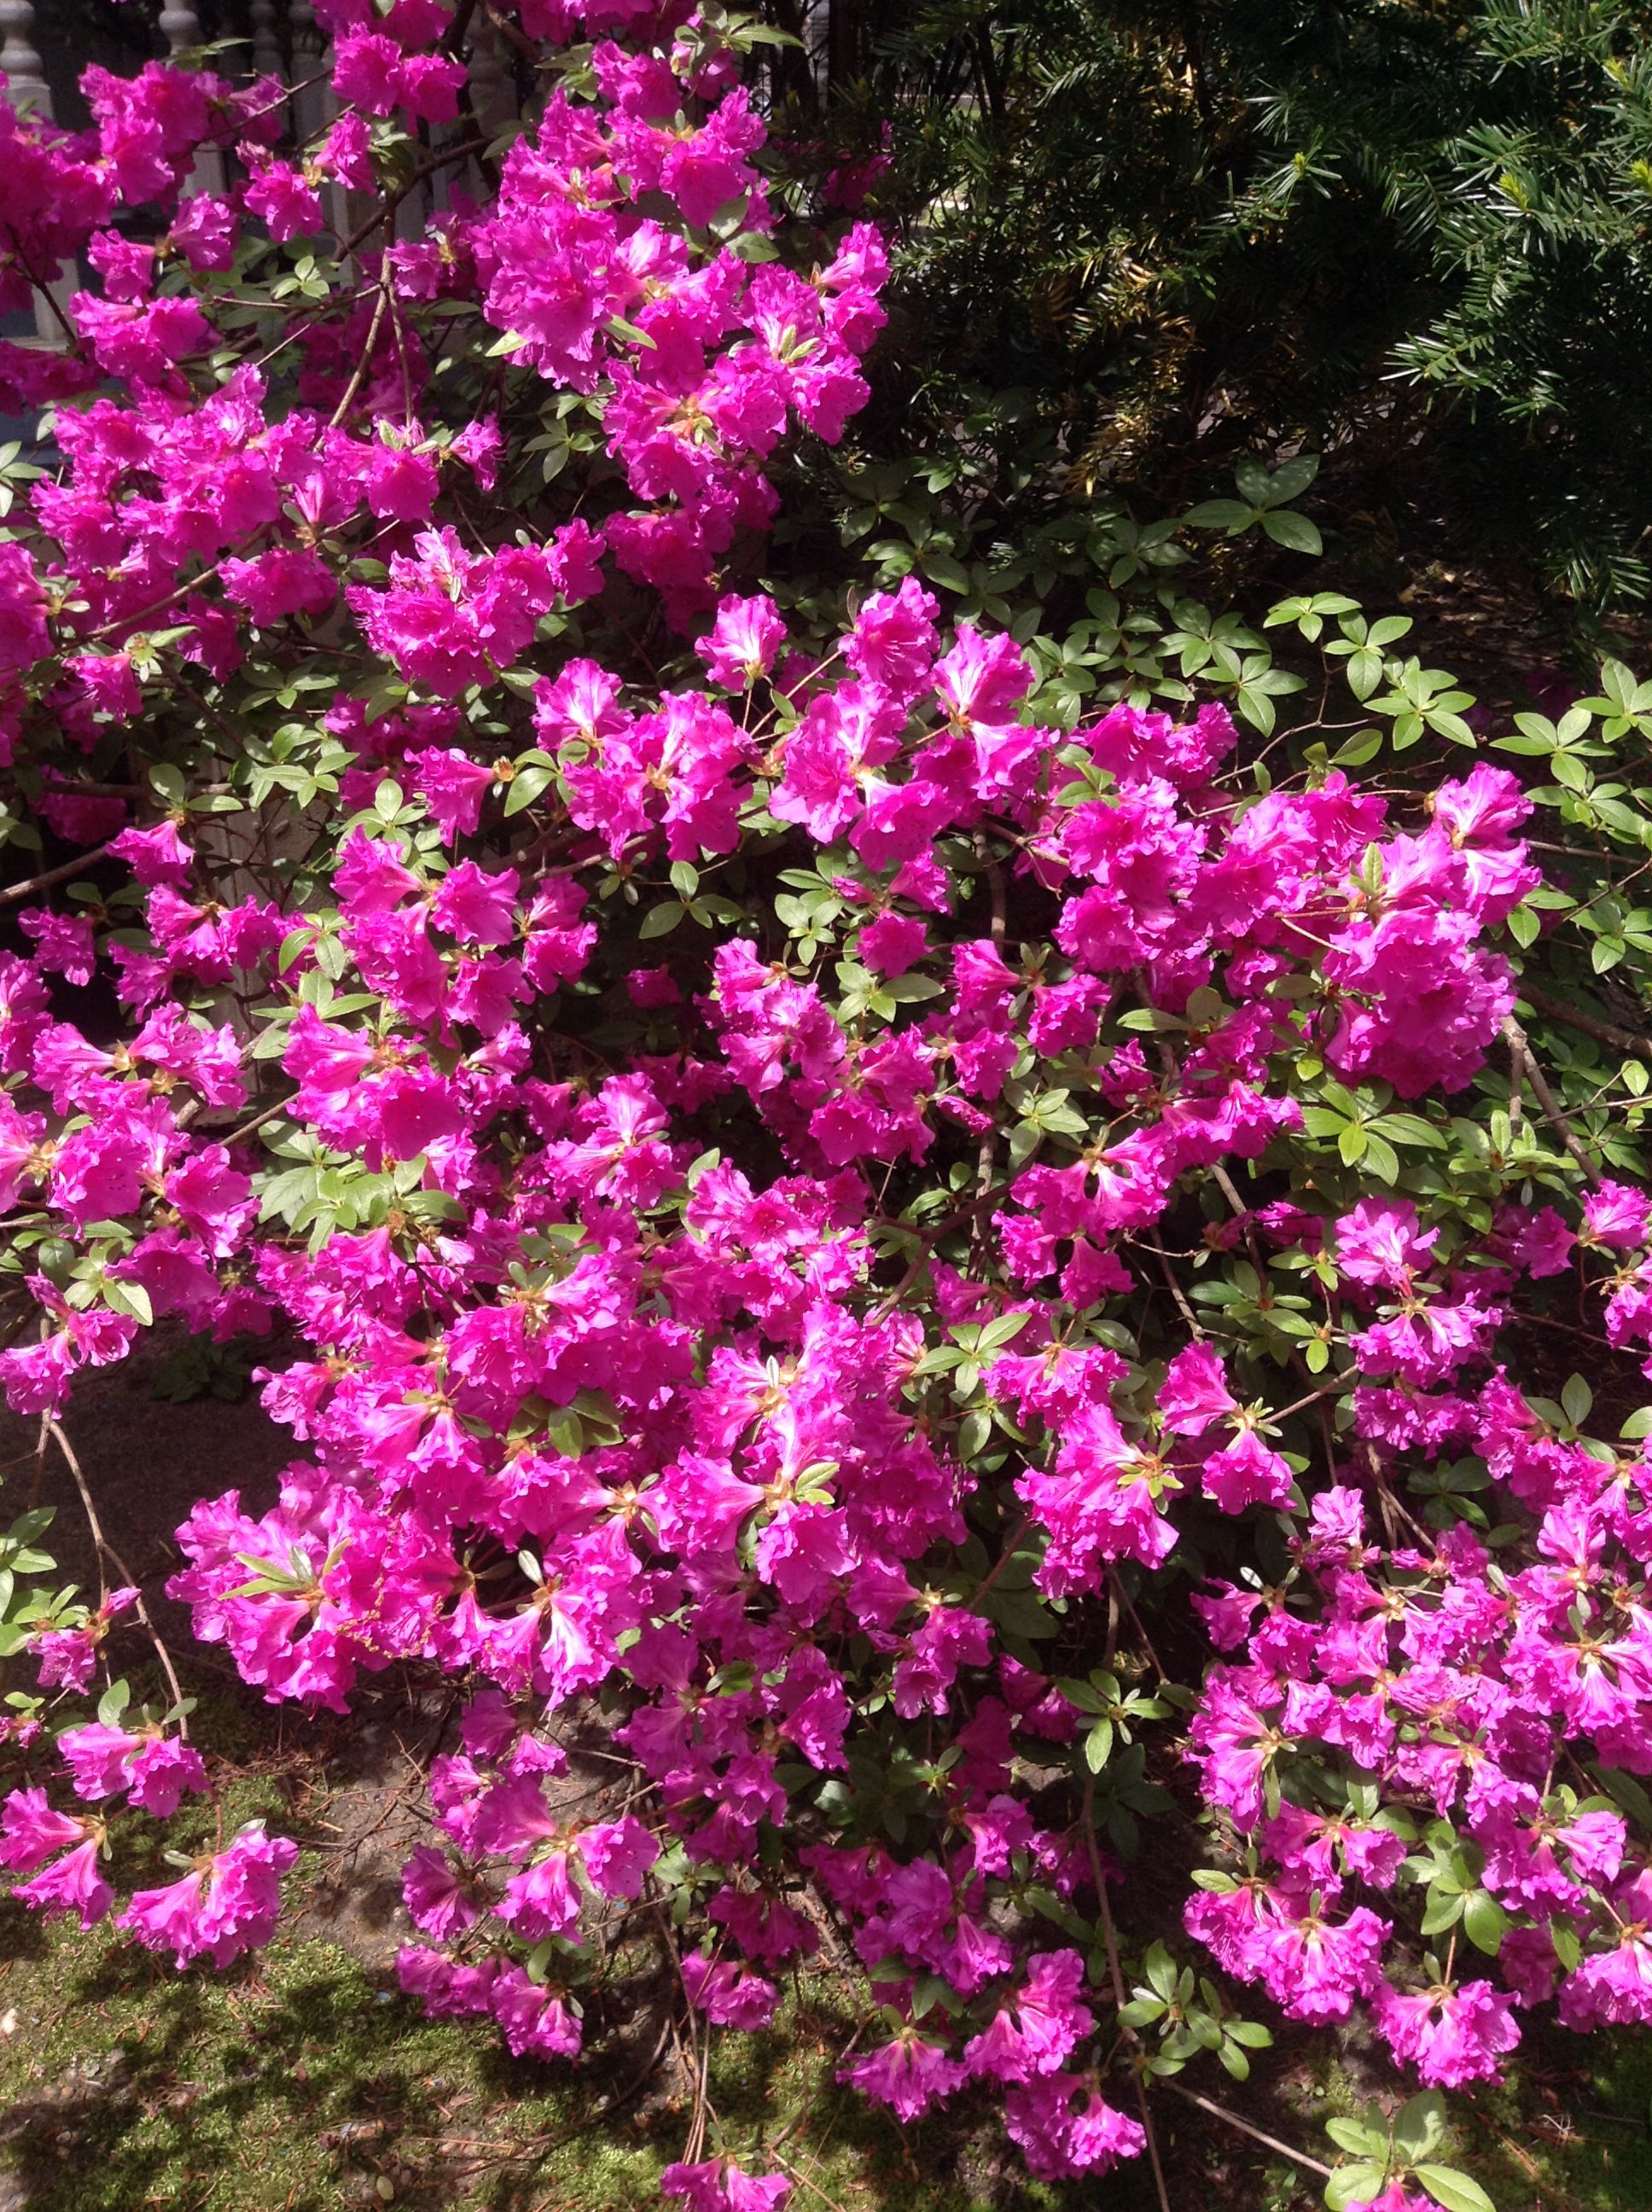 Pretty Pink Flower Bush In Season Science And Nature Pinterest